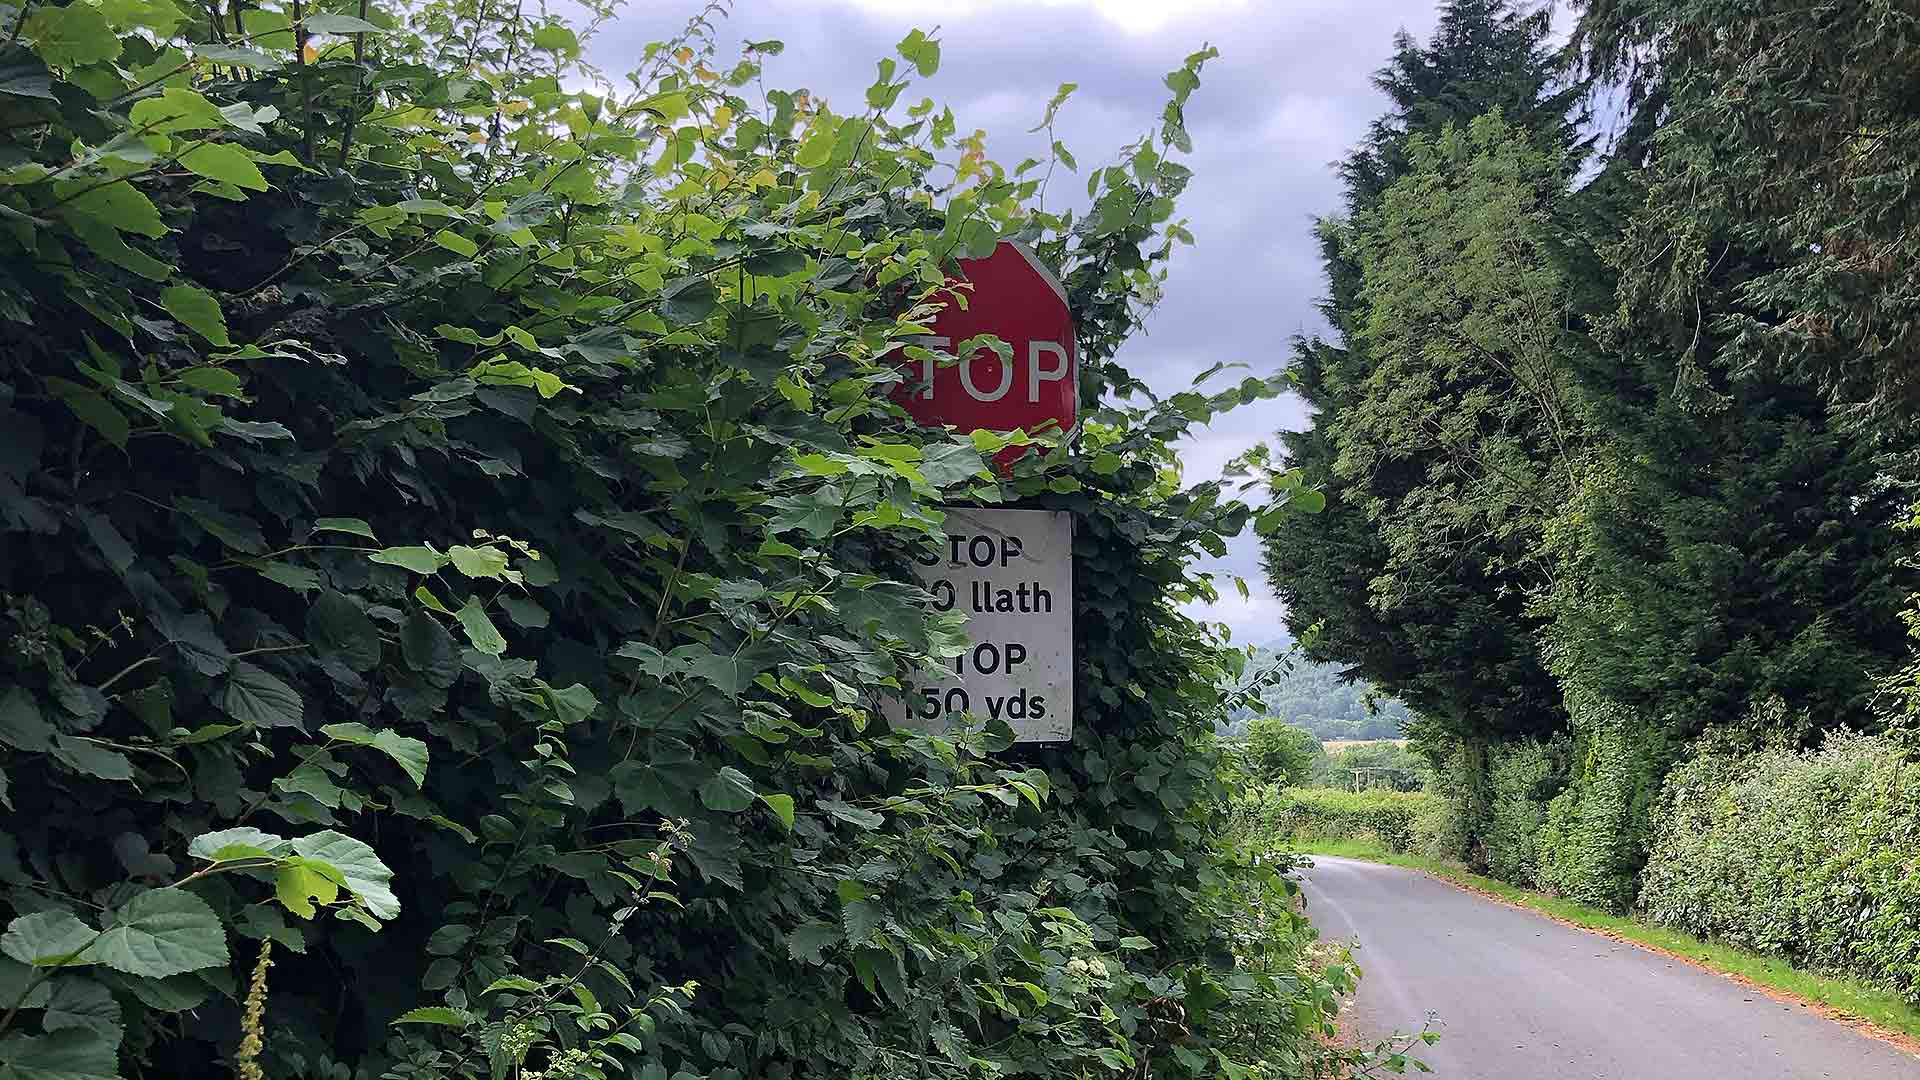 Obscured Stop sign on a rural road